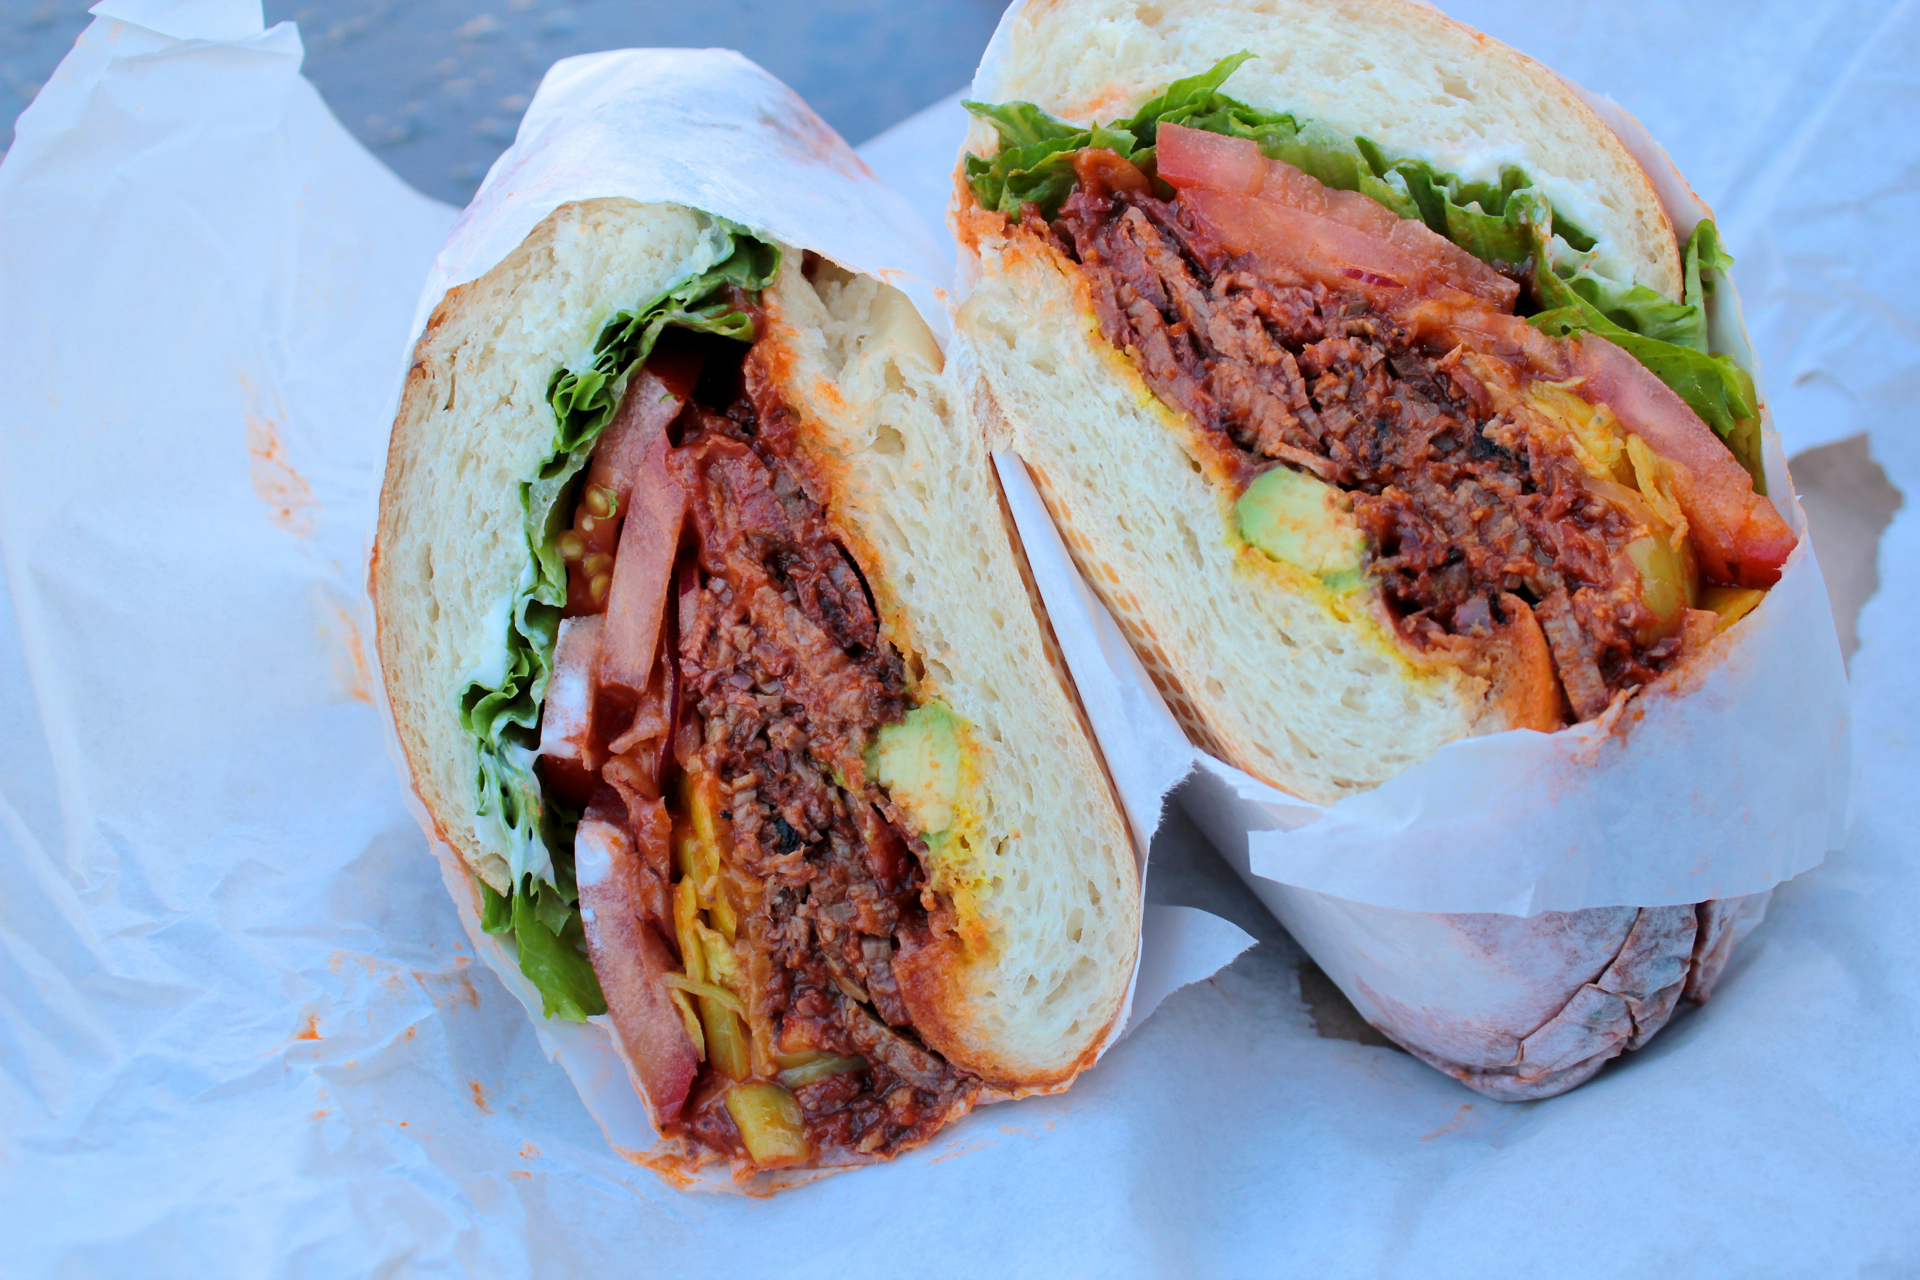 Guide to 10 Favorite Sandwich Shops South of San Francisco | Bay Area ...